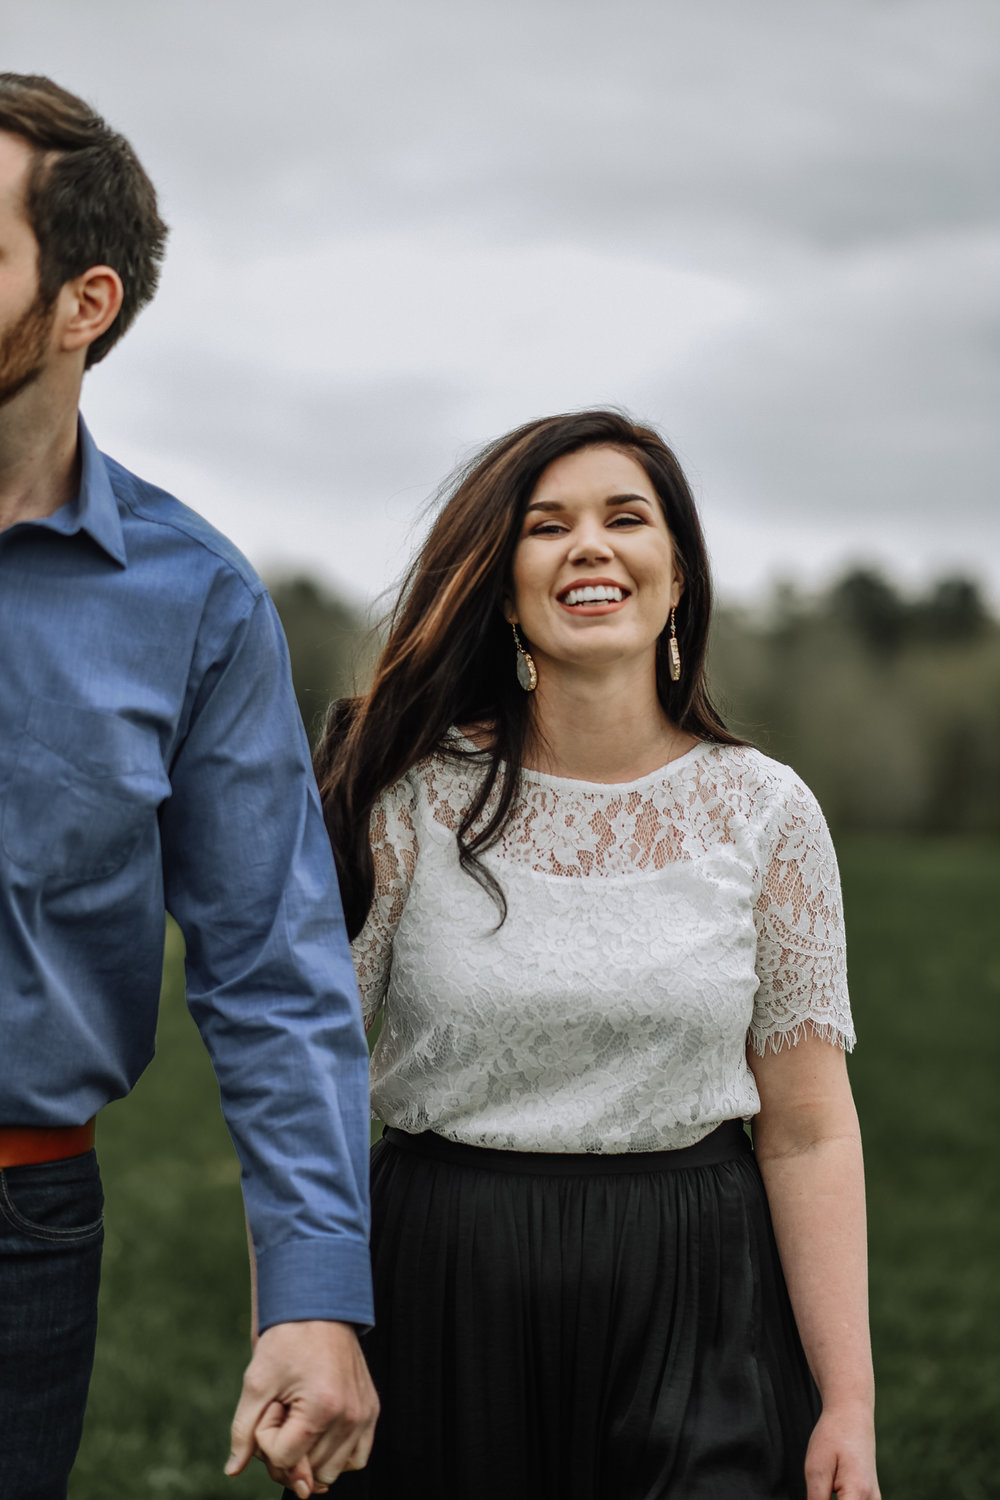 Engagement Session on Country Land in Clinton, Louisiana by Baton Rouge photographer Magnolia and Grace Photography